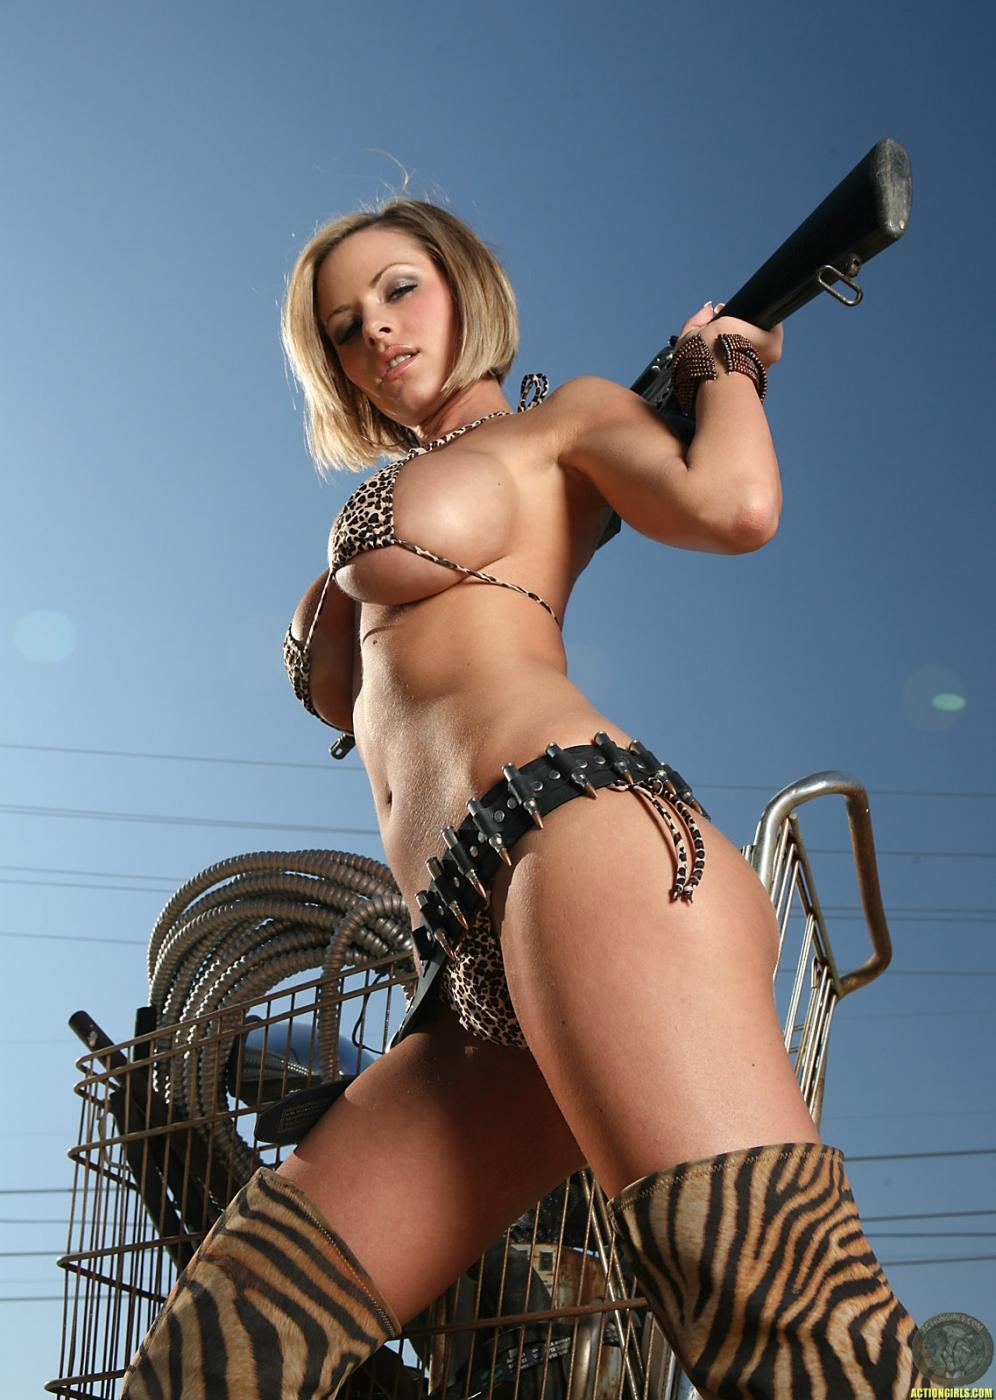 Scottys action girl pics — pic 11